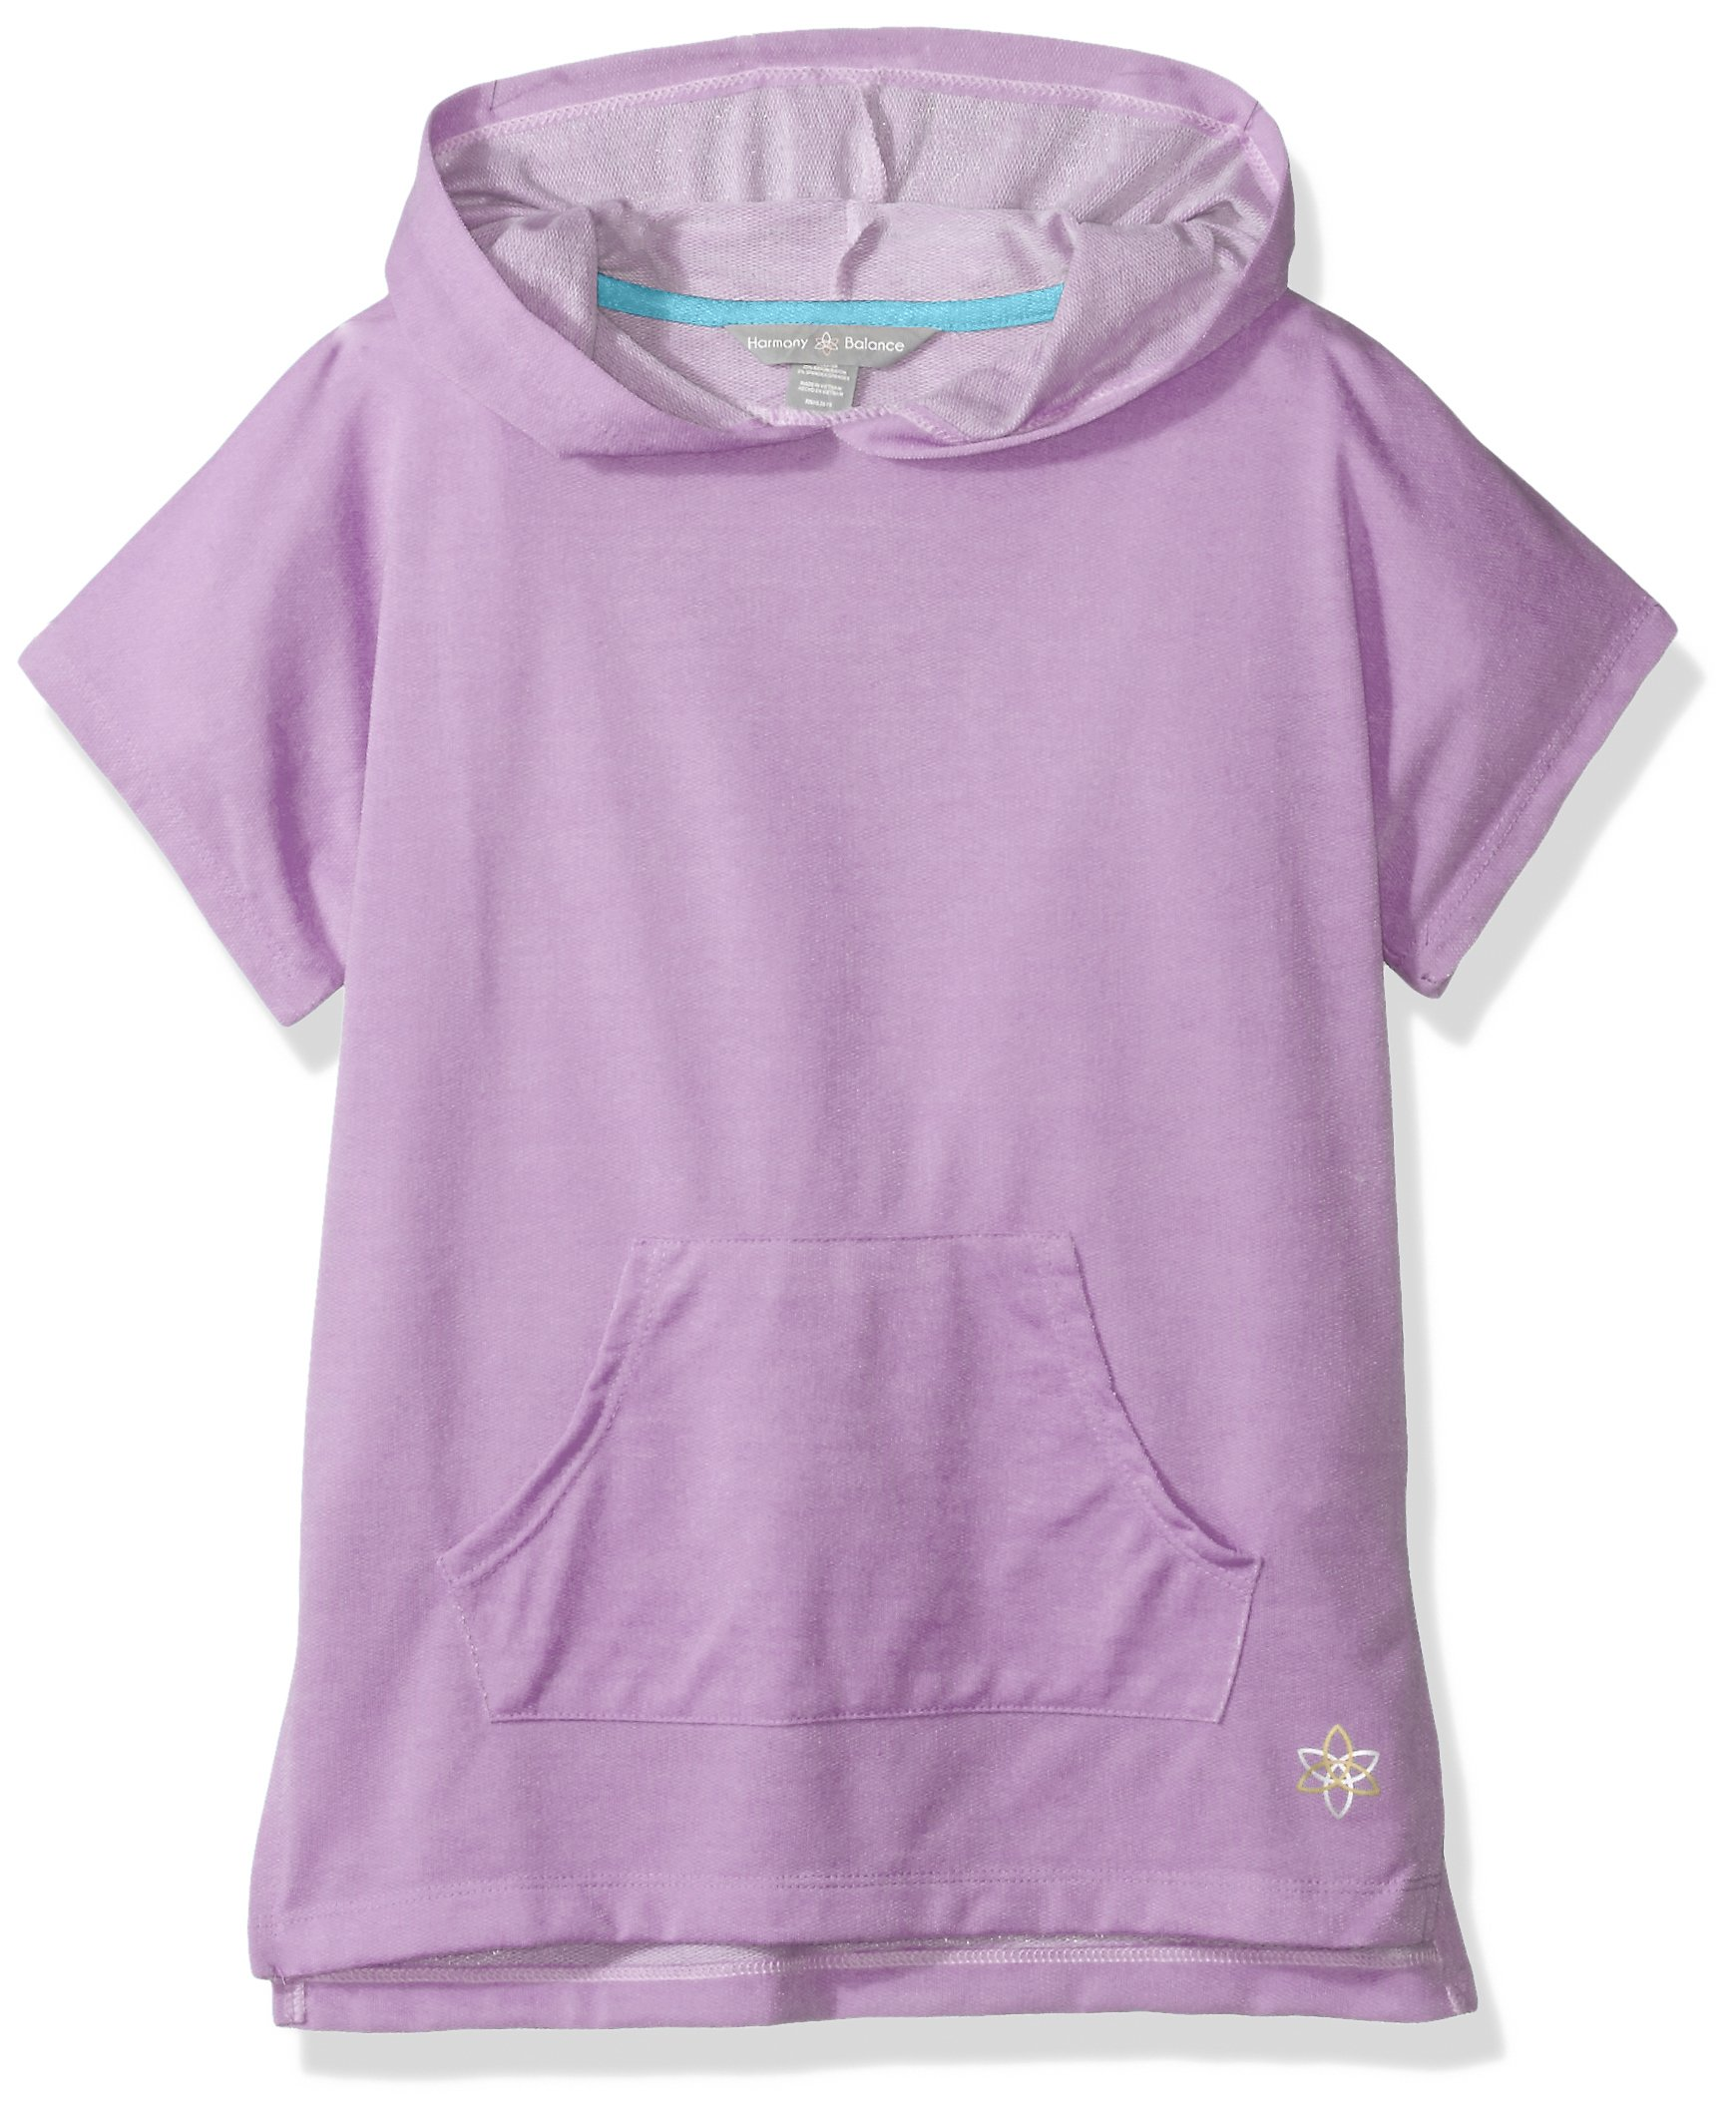 Harmony and Balance Big Girls' French Terry Top, Pearl Lavender, 14/16